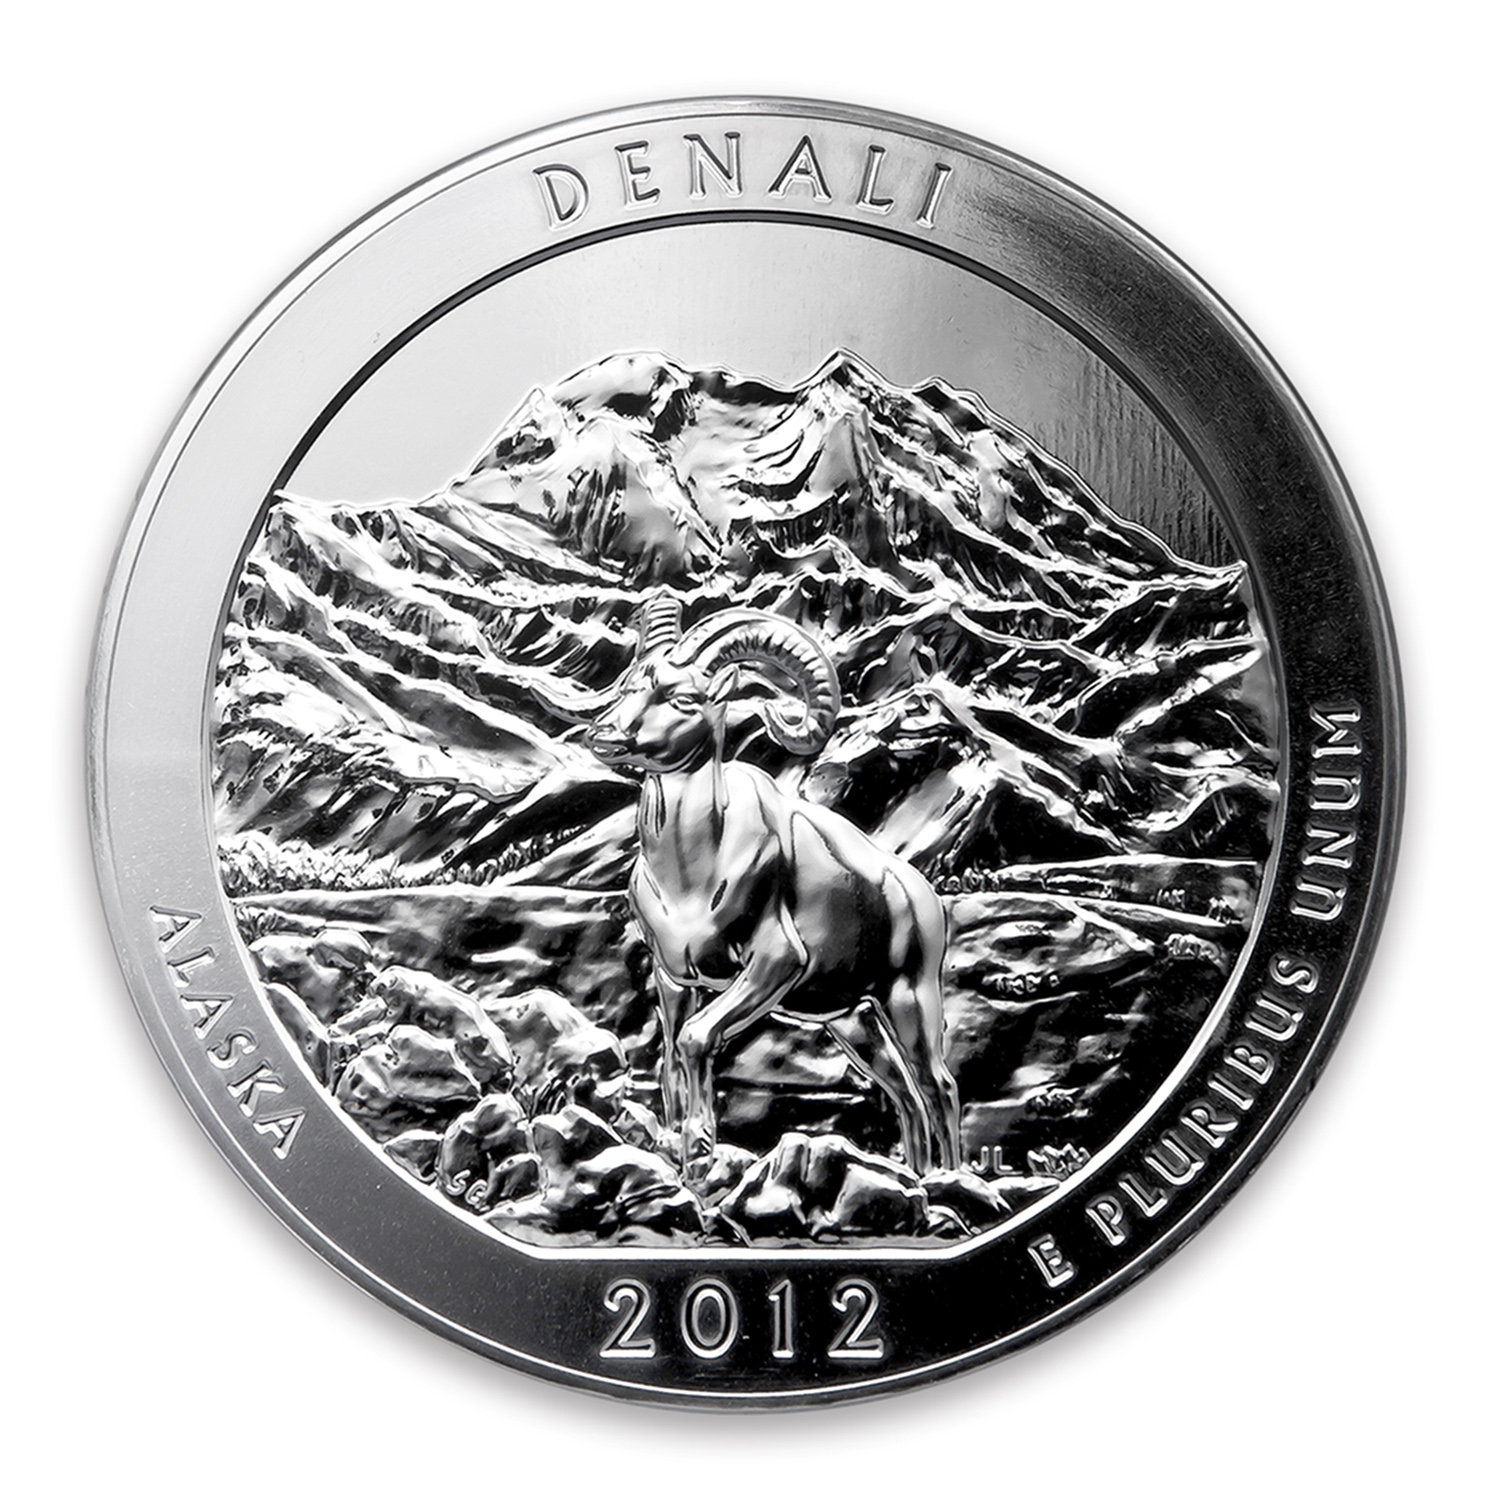 2012 5 oz Silver ATB Denali National Park, AK